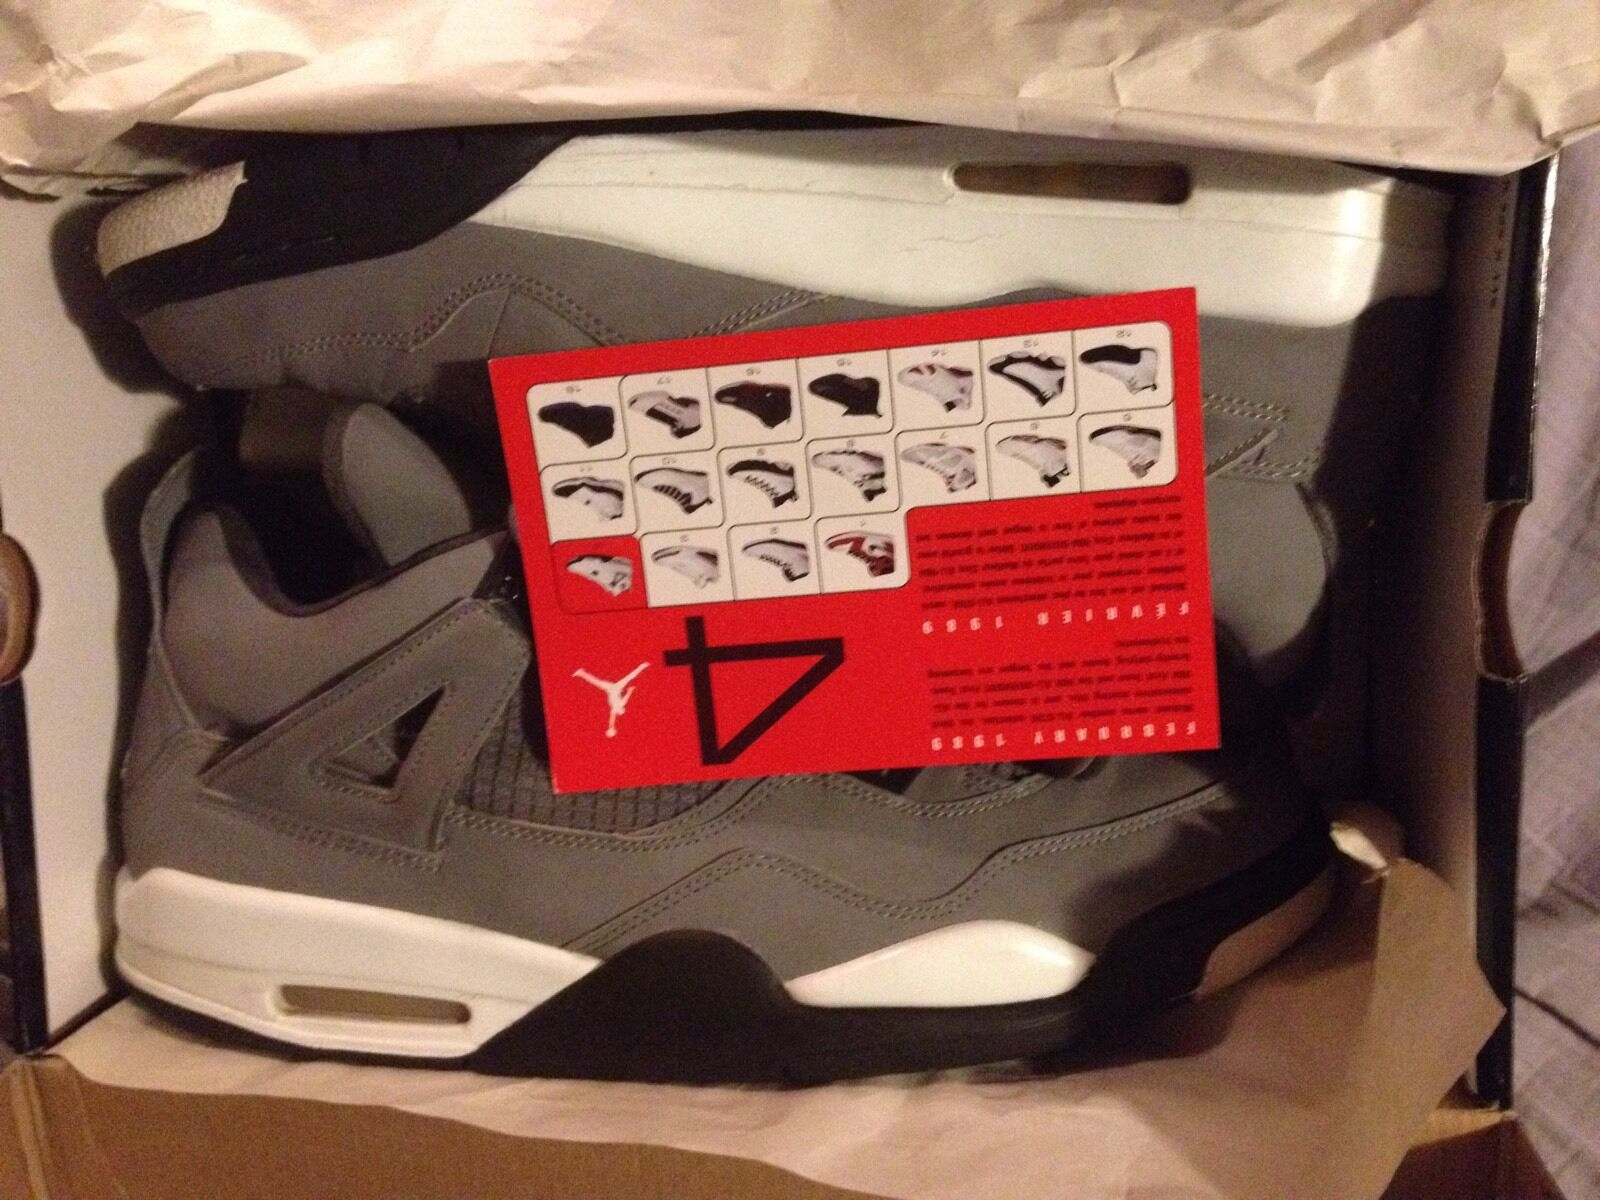 USED AND GOOD CONDITION 2004 NIKE Air Jordan 4 IV Cool Grey sz 13 WOW